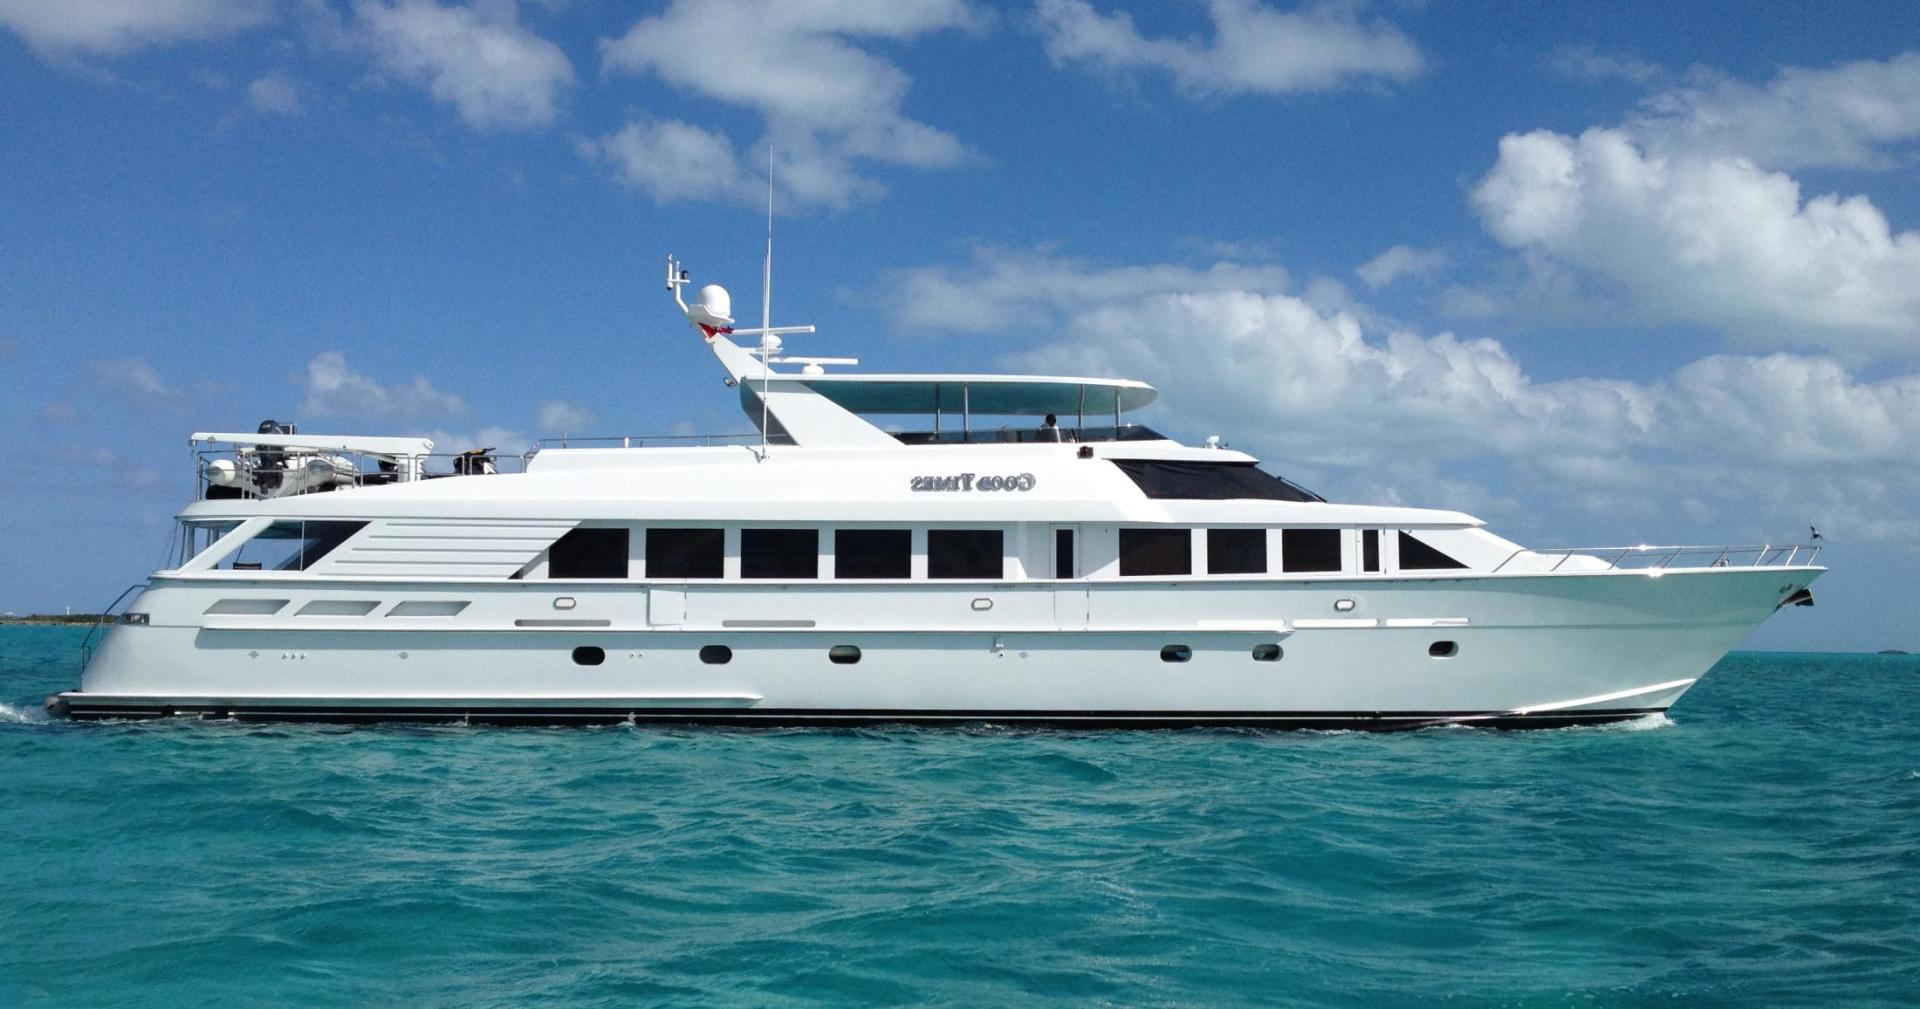 GOOD TIMES is a Hatteras Raised Pilothouse MY Yacht For Sale in Ft. Lauderdale-114' Hatteras Motor Yacht-0